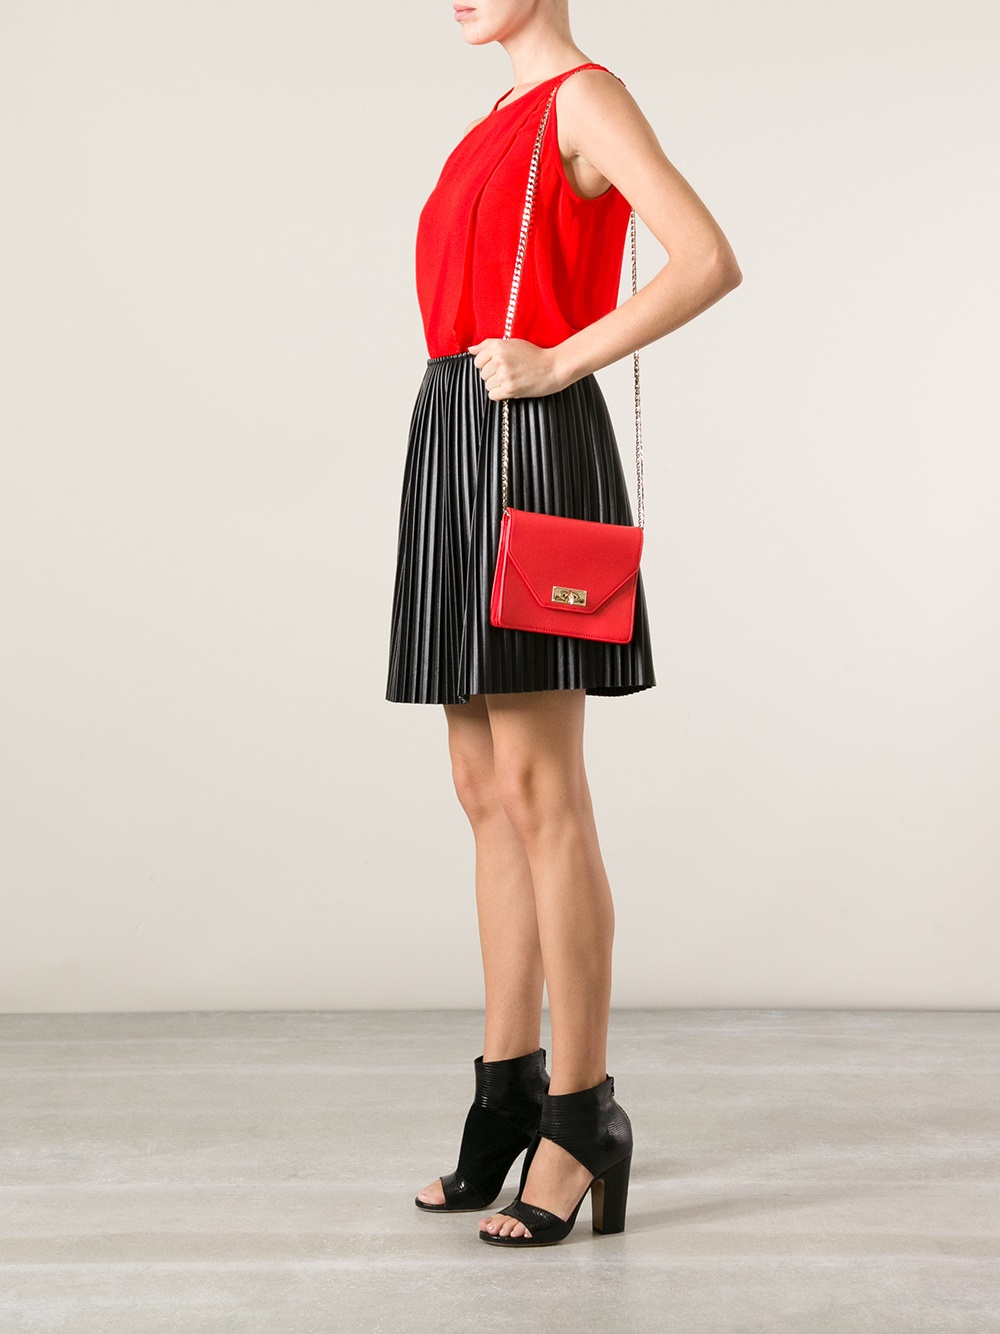 Lyst - Givenchy  shark  Shoulder Bag in Red 4f2772eee85df